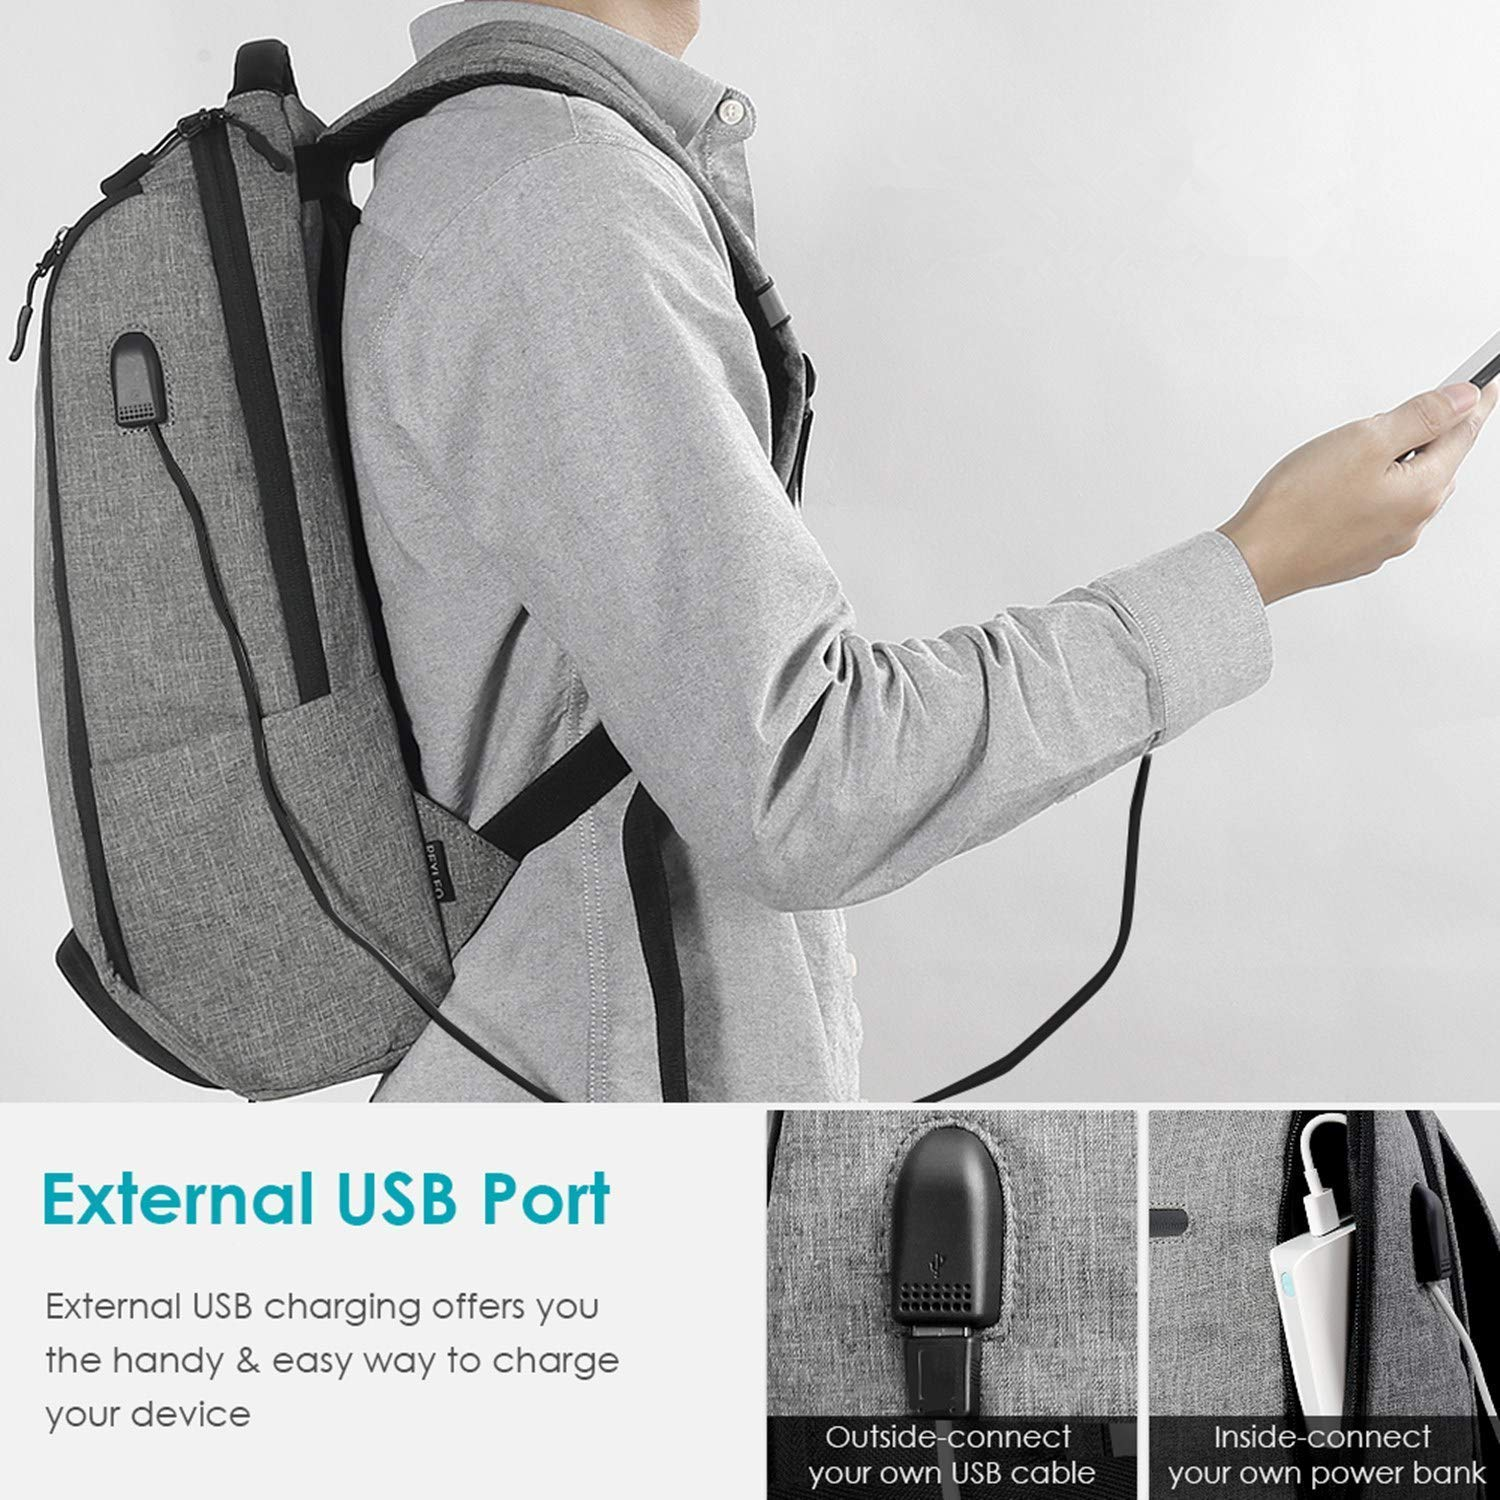 Laptop Backpack, REYLEO Backpack, Work Backpack for Man&Woman,Fits 15.6 Inch Laptop, with Shoe Compartment, External USB Charging Port, Water Resistant,Gray, Back to School Choice, RB06 by REYLEO (Image #4)